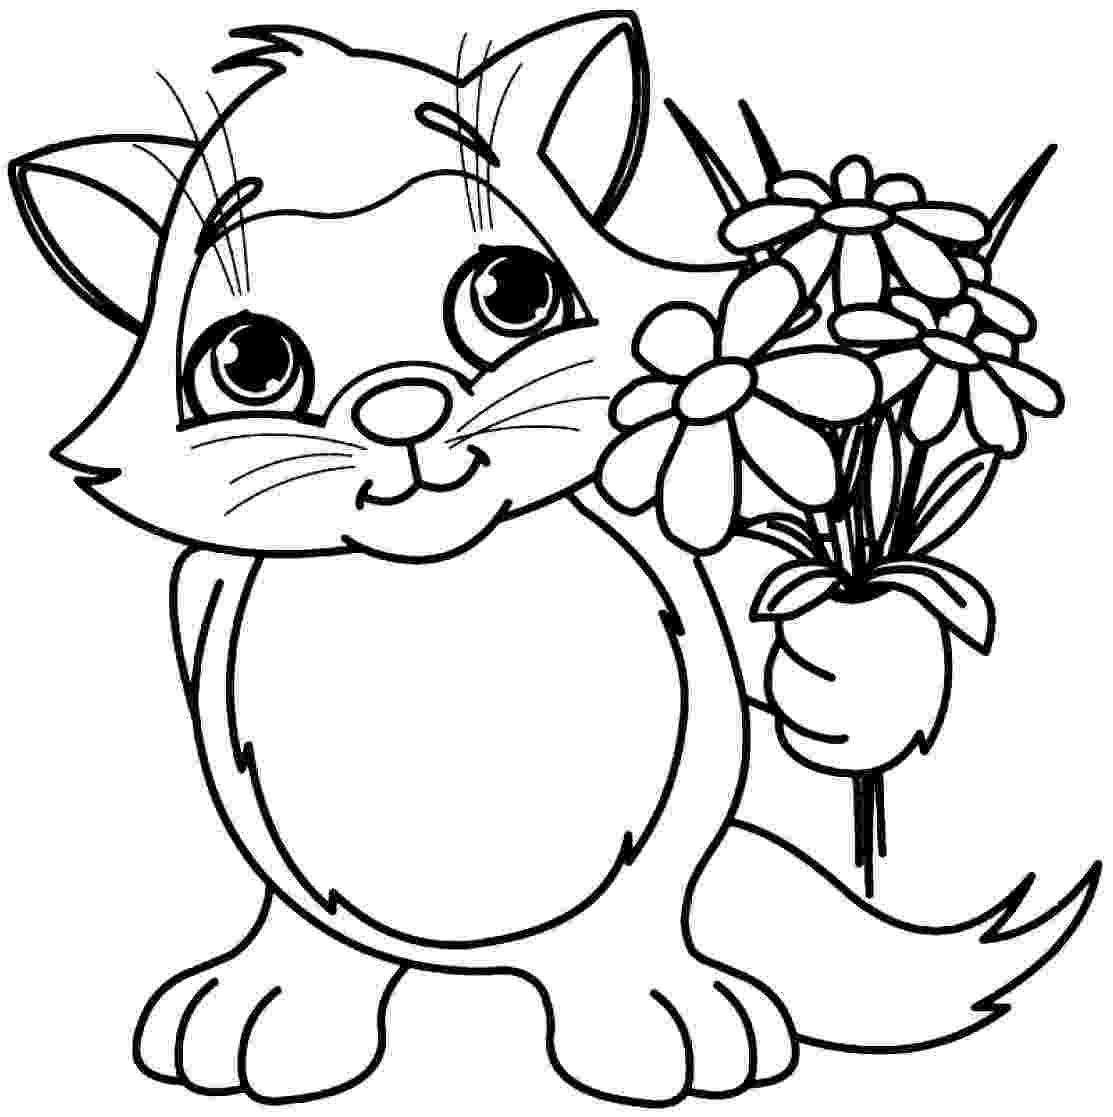 printable colouring flower pages free printable flower coloring pages for kids cool2bkids printable flower colouring pages